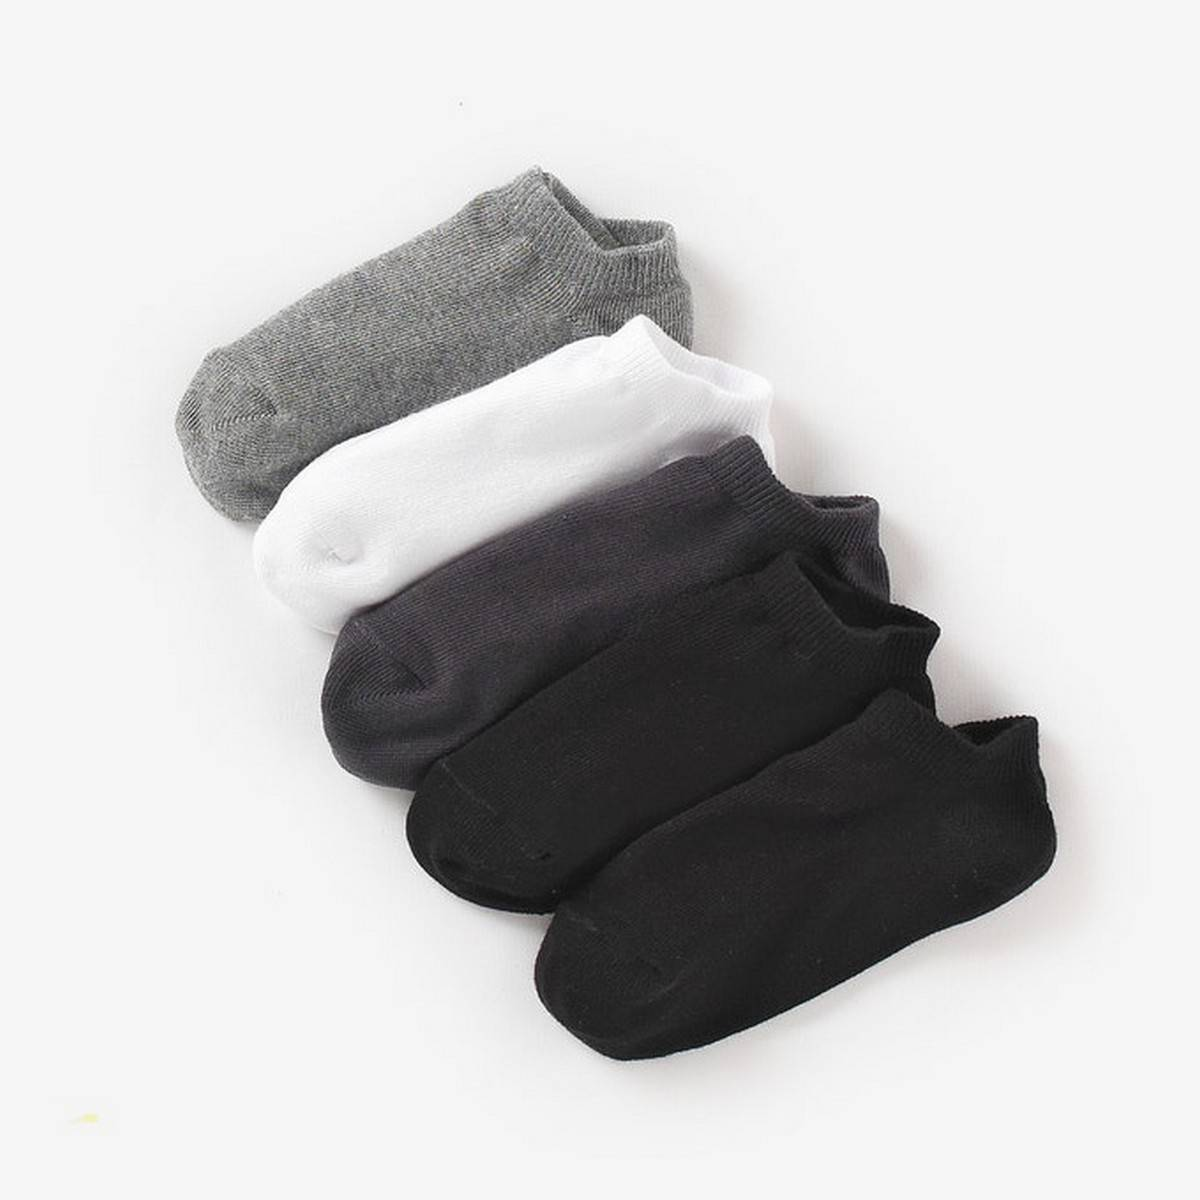 10 PAIR OF ANKLE SOCKS | FOR ALL WEATHERS | DIFFERENT COLORS